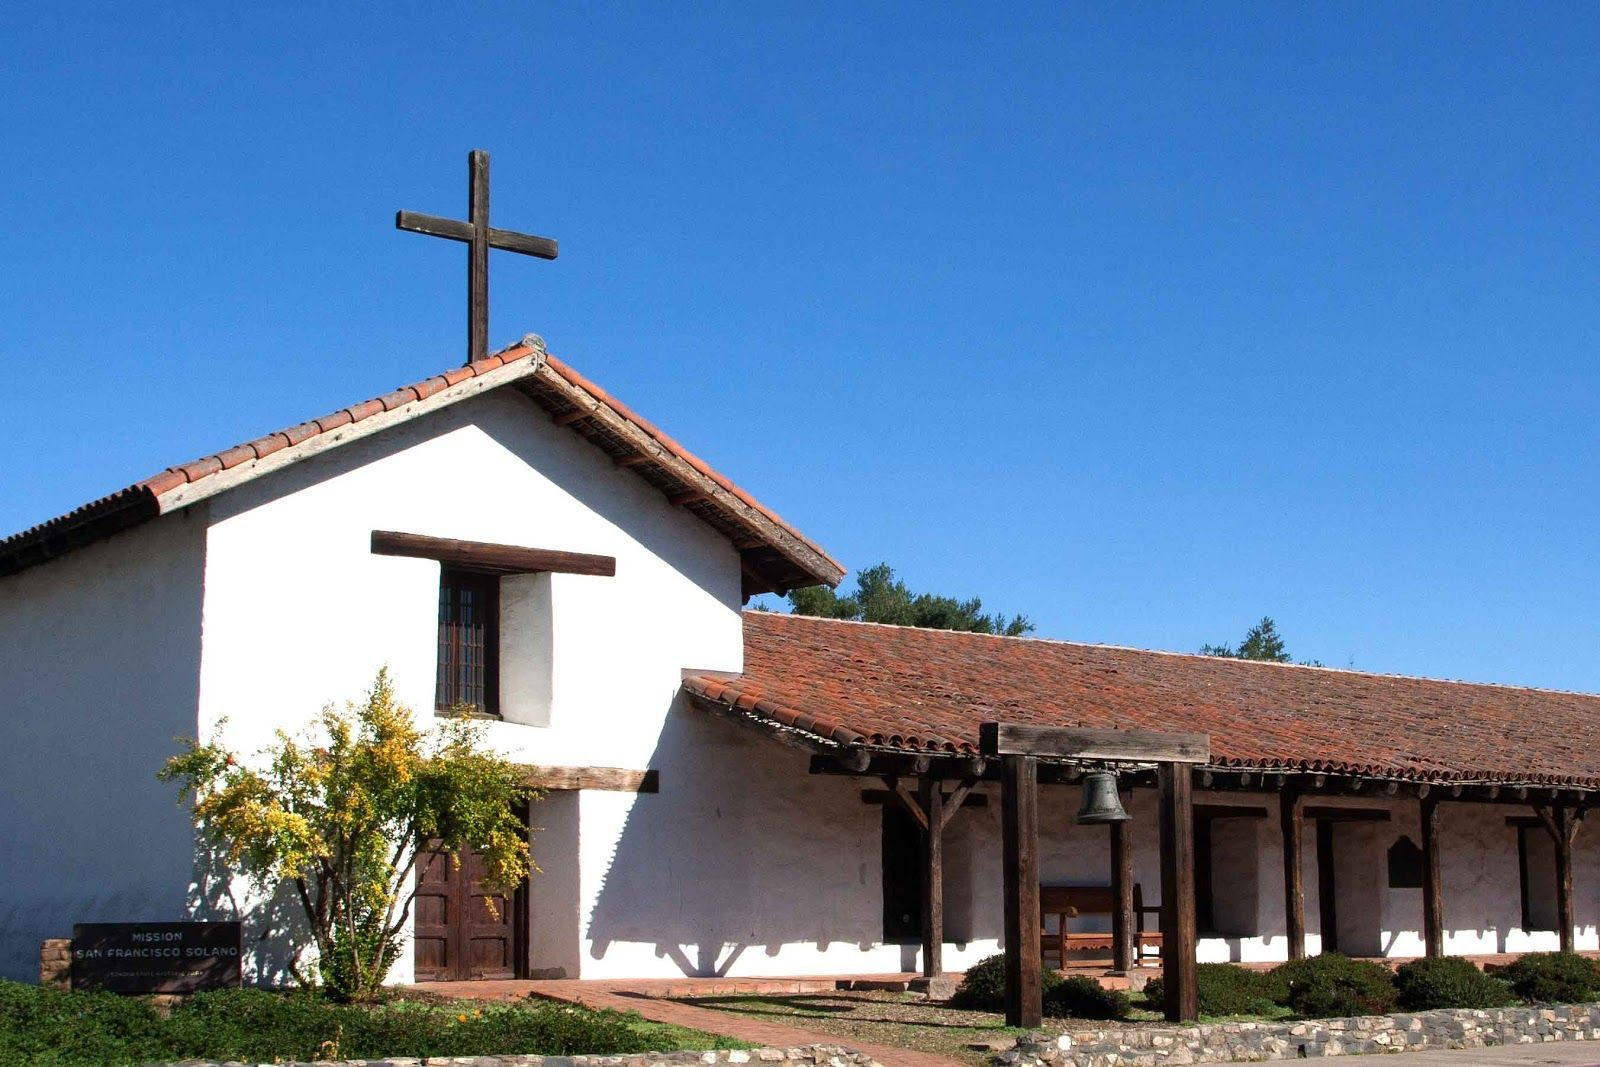 21. Mission San Francisco Solano, founded by Padre José